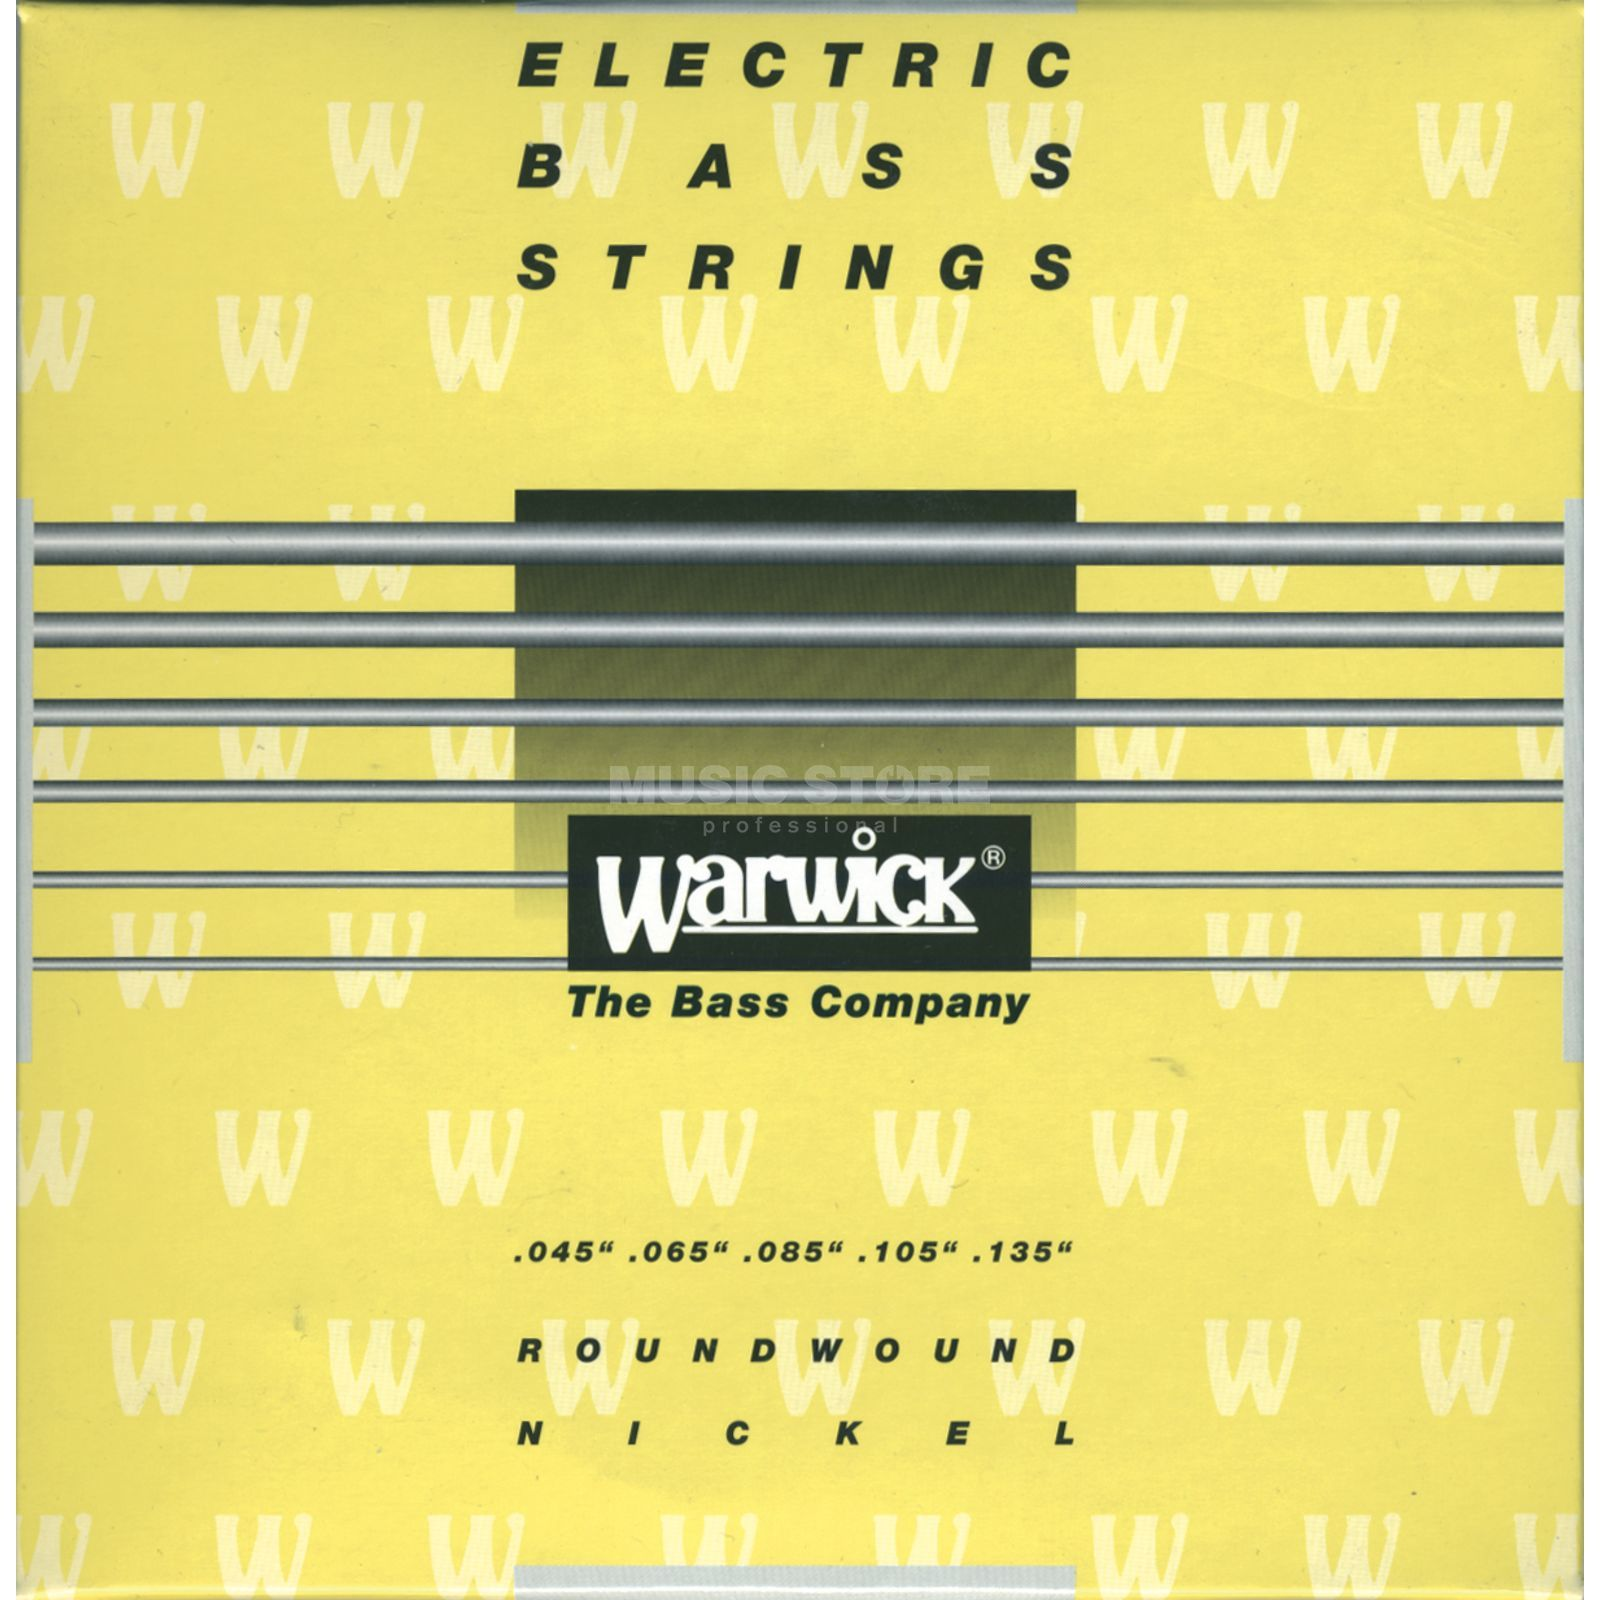 Warwick Bass Strings, 45-135, Yellow 5 String Set, Nickel Strings Zdjęcie produktu